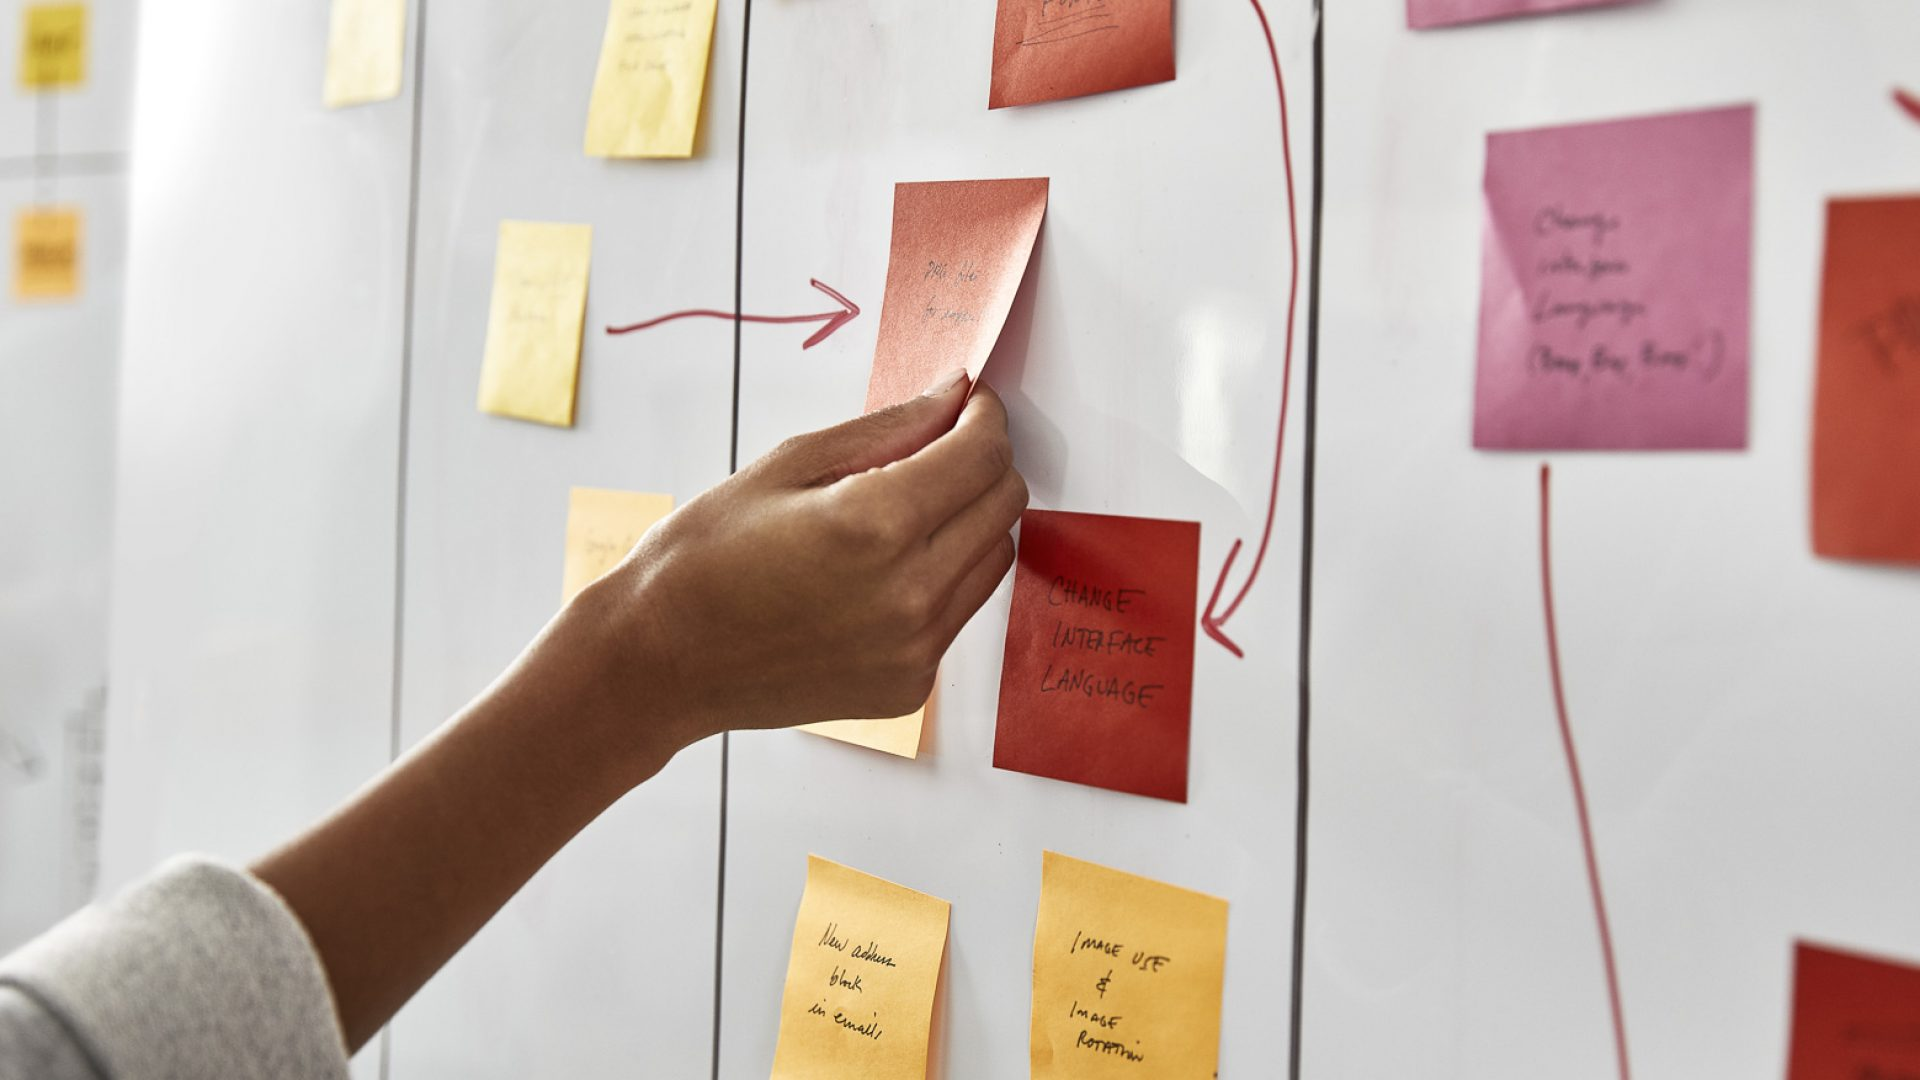 Our four step Empowerment Process is designed to uncover opportunity, even before the first napkin sketch.